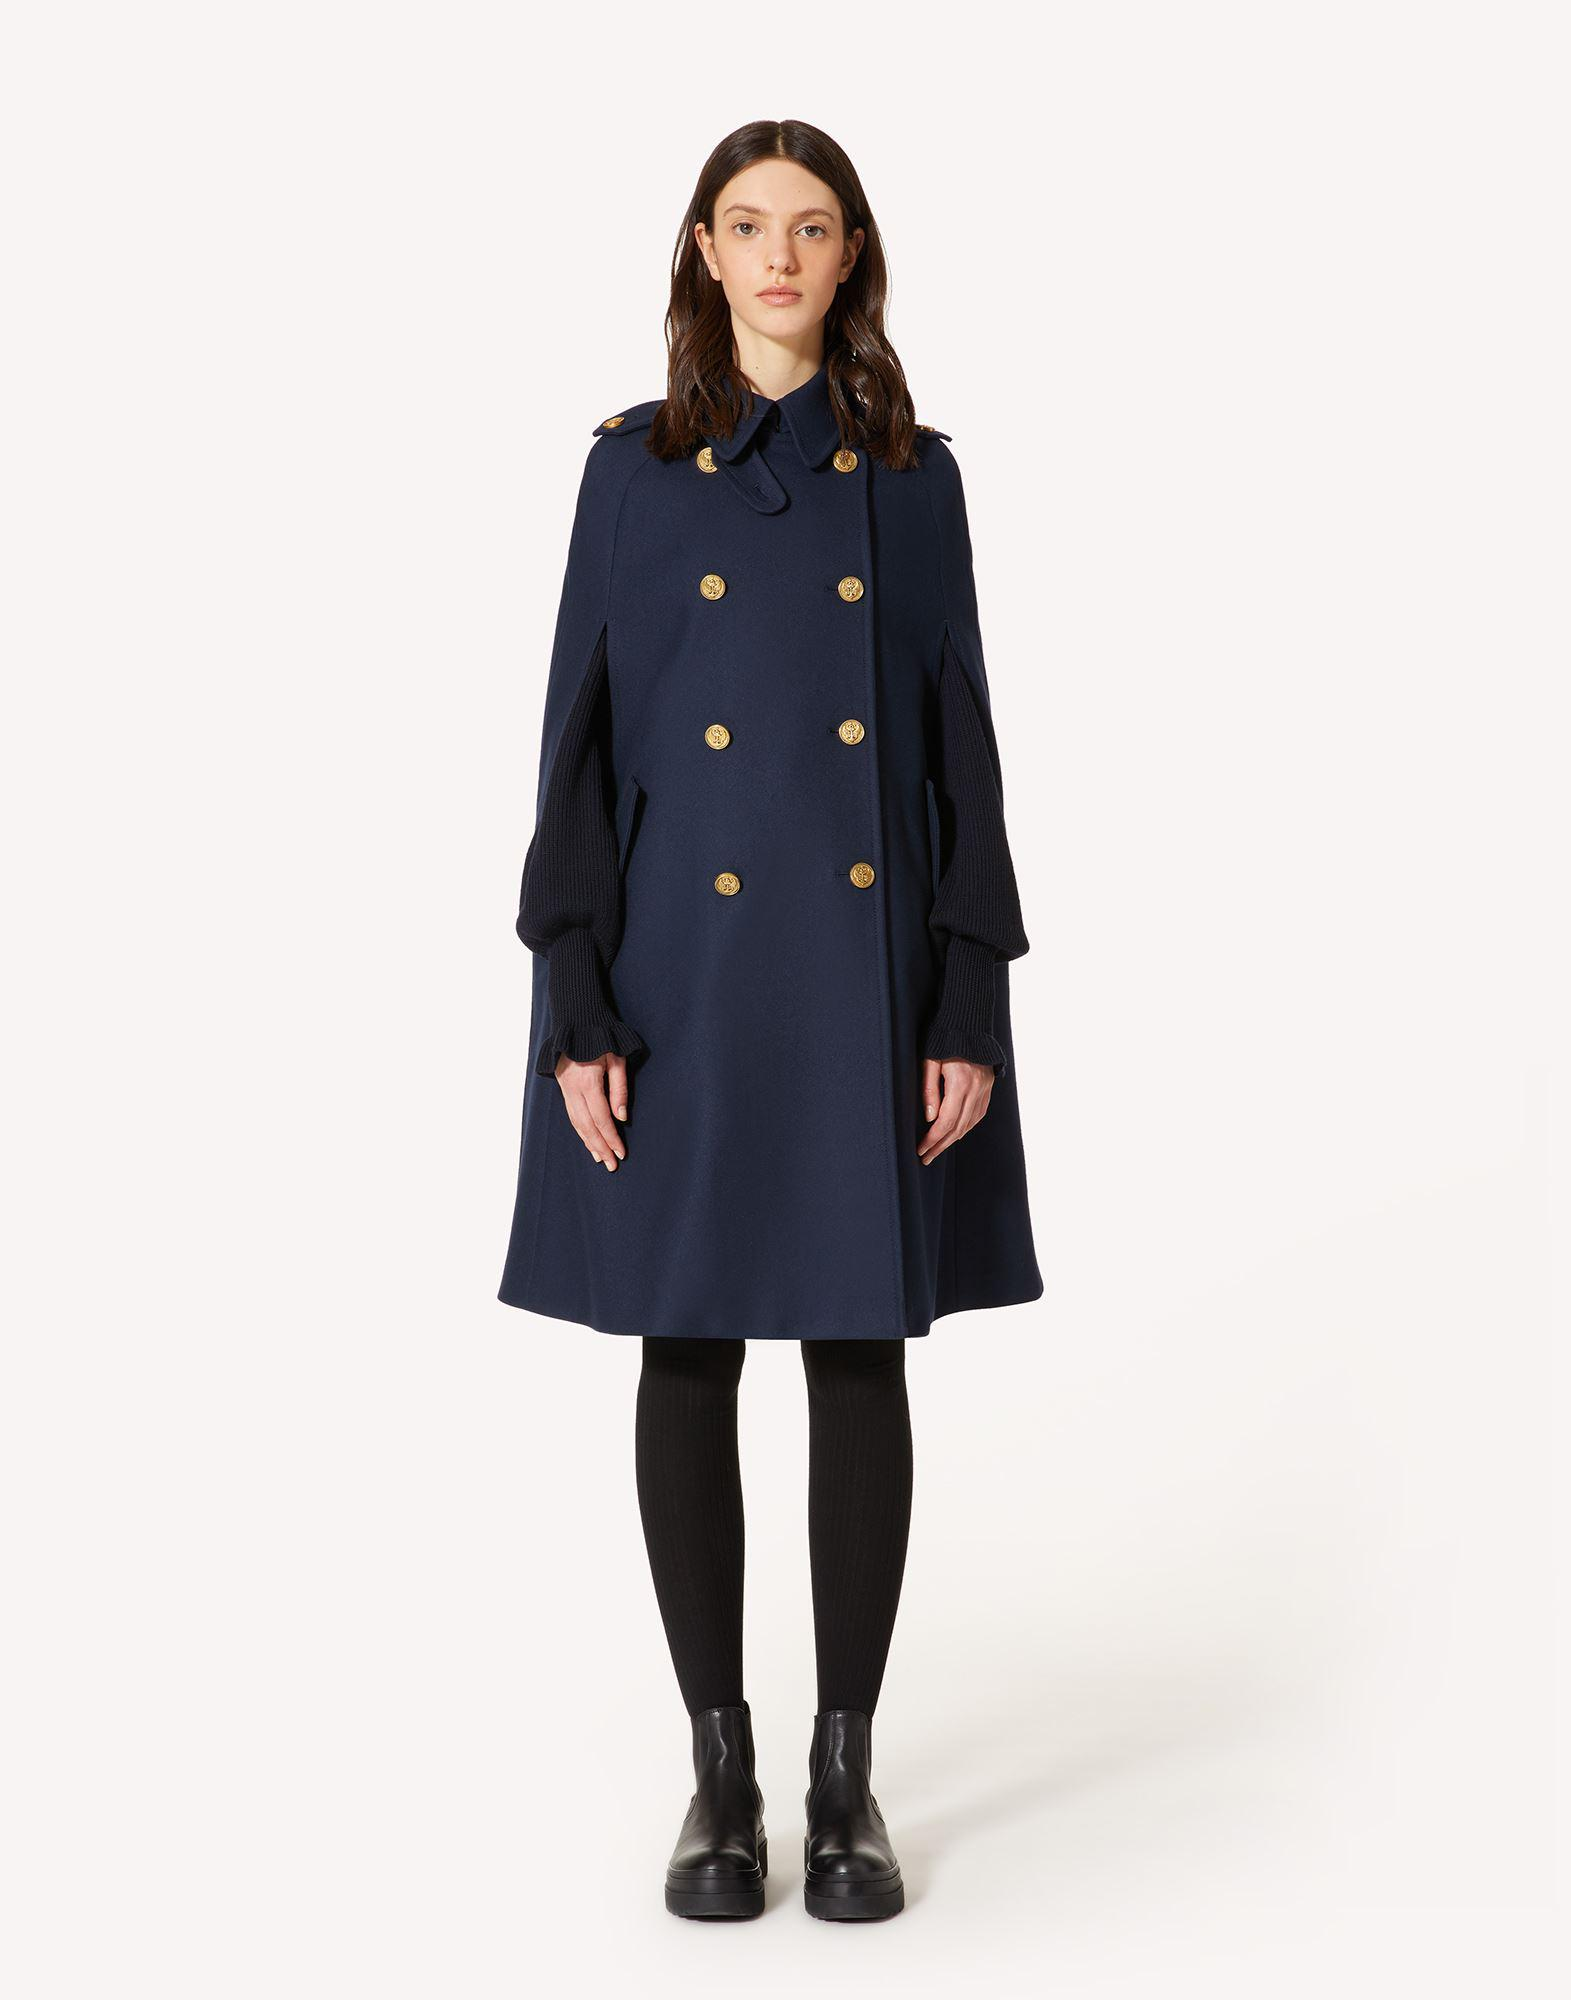 FELT WOOL CAPE WITH MARINE BUTTONS